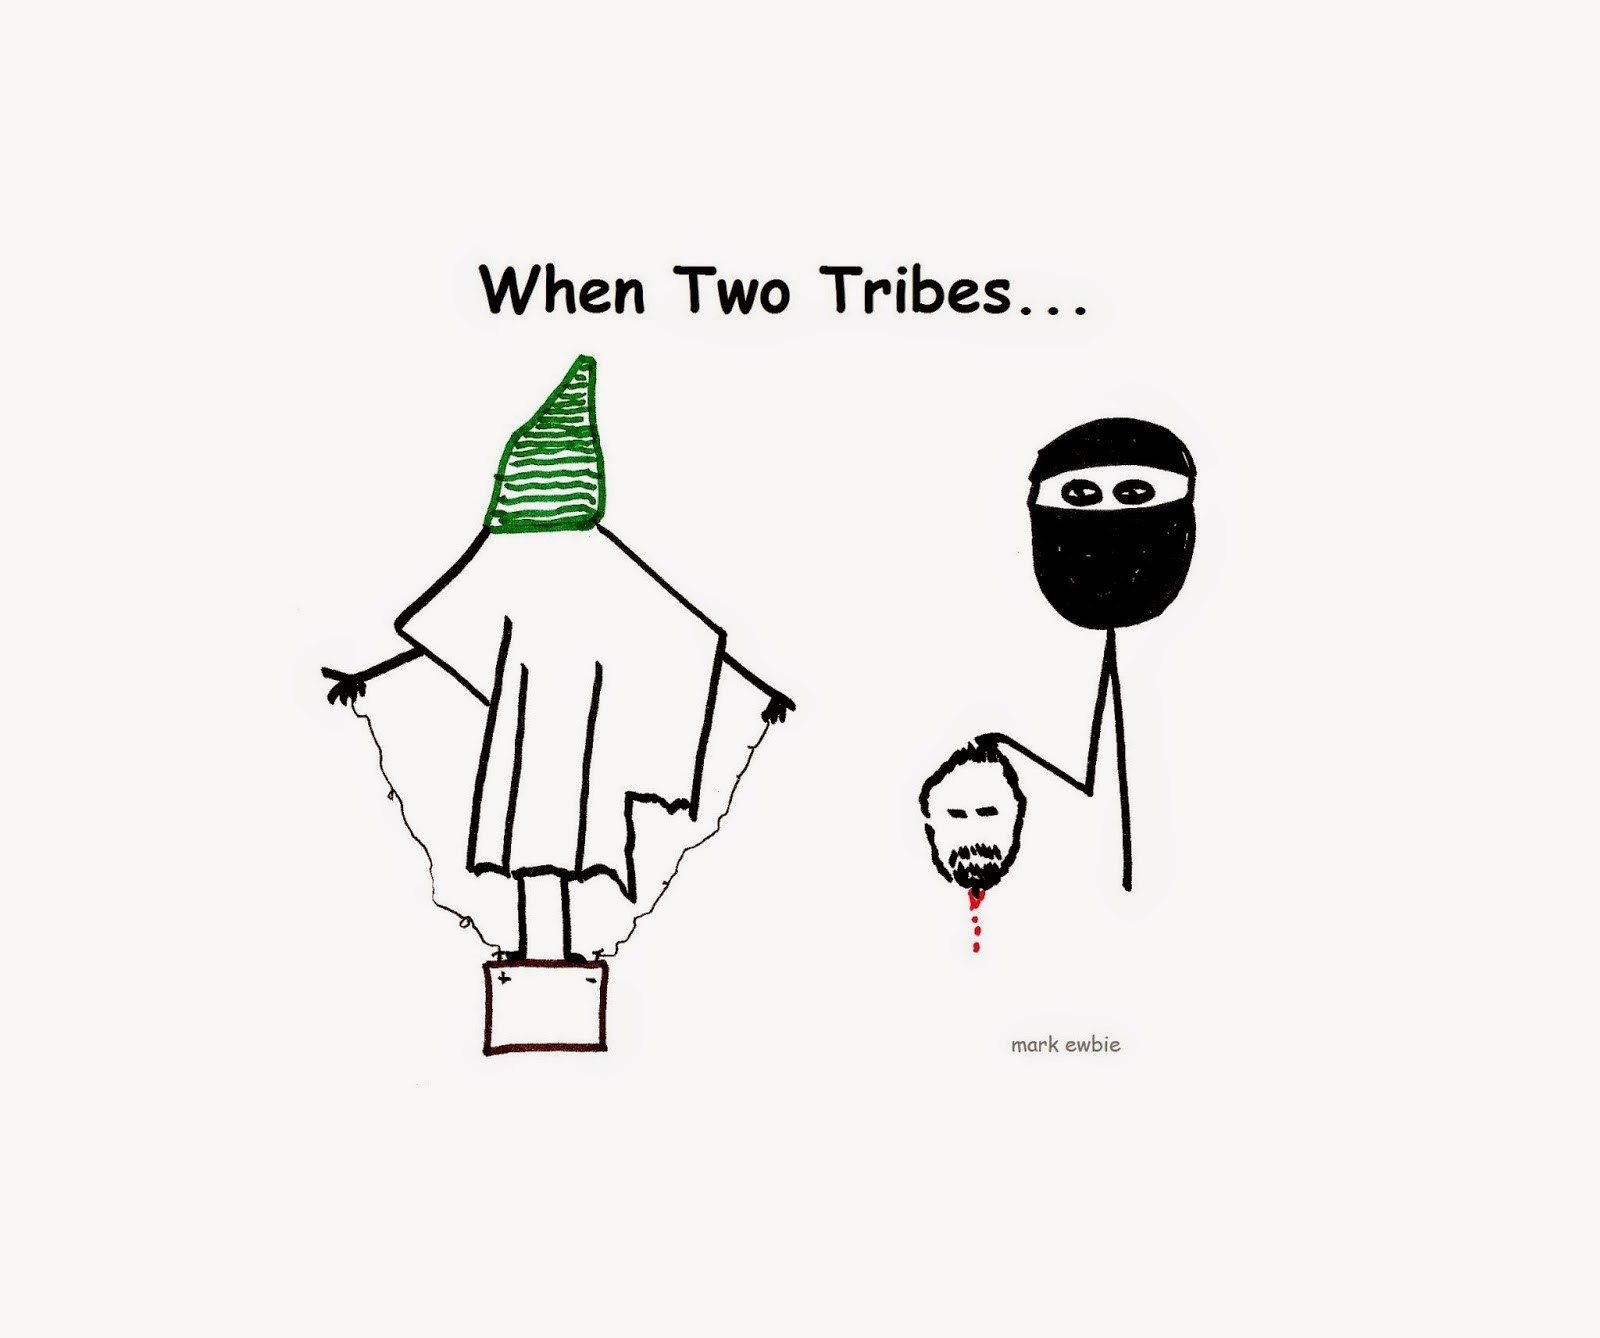 when two tribes go to war - abu ghraib and islamic state